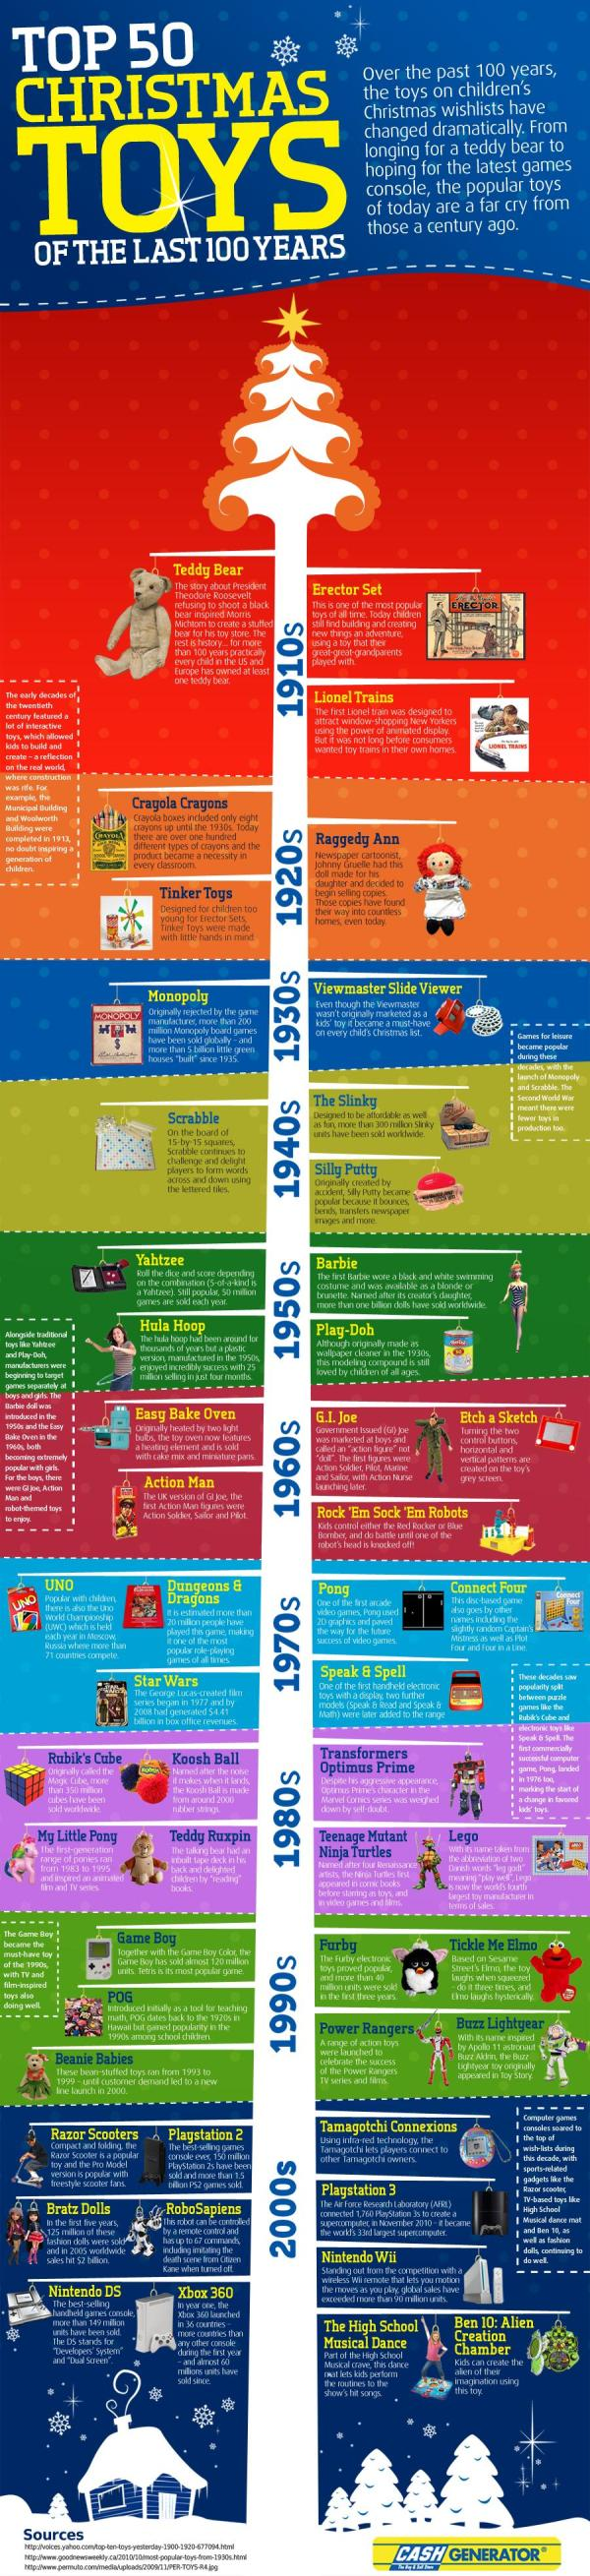 top-50-christmas-toys-of-the-last-100-years